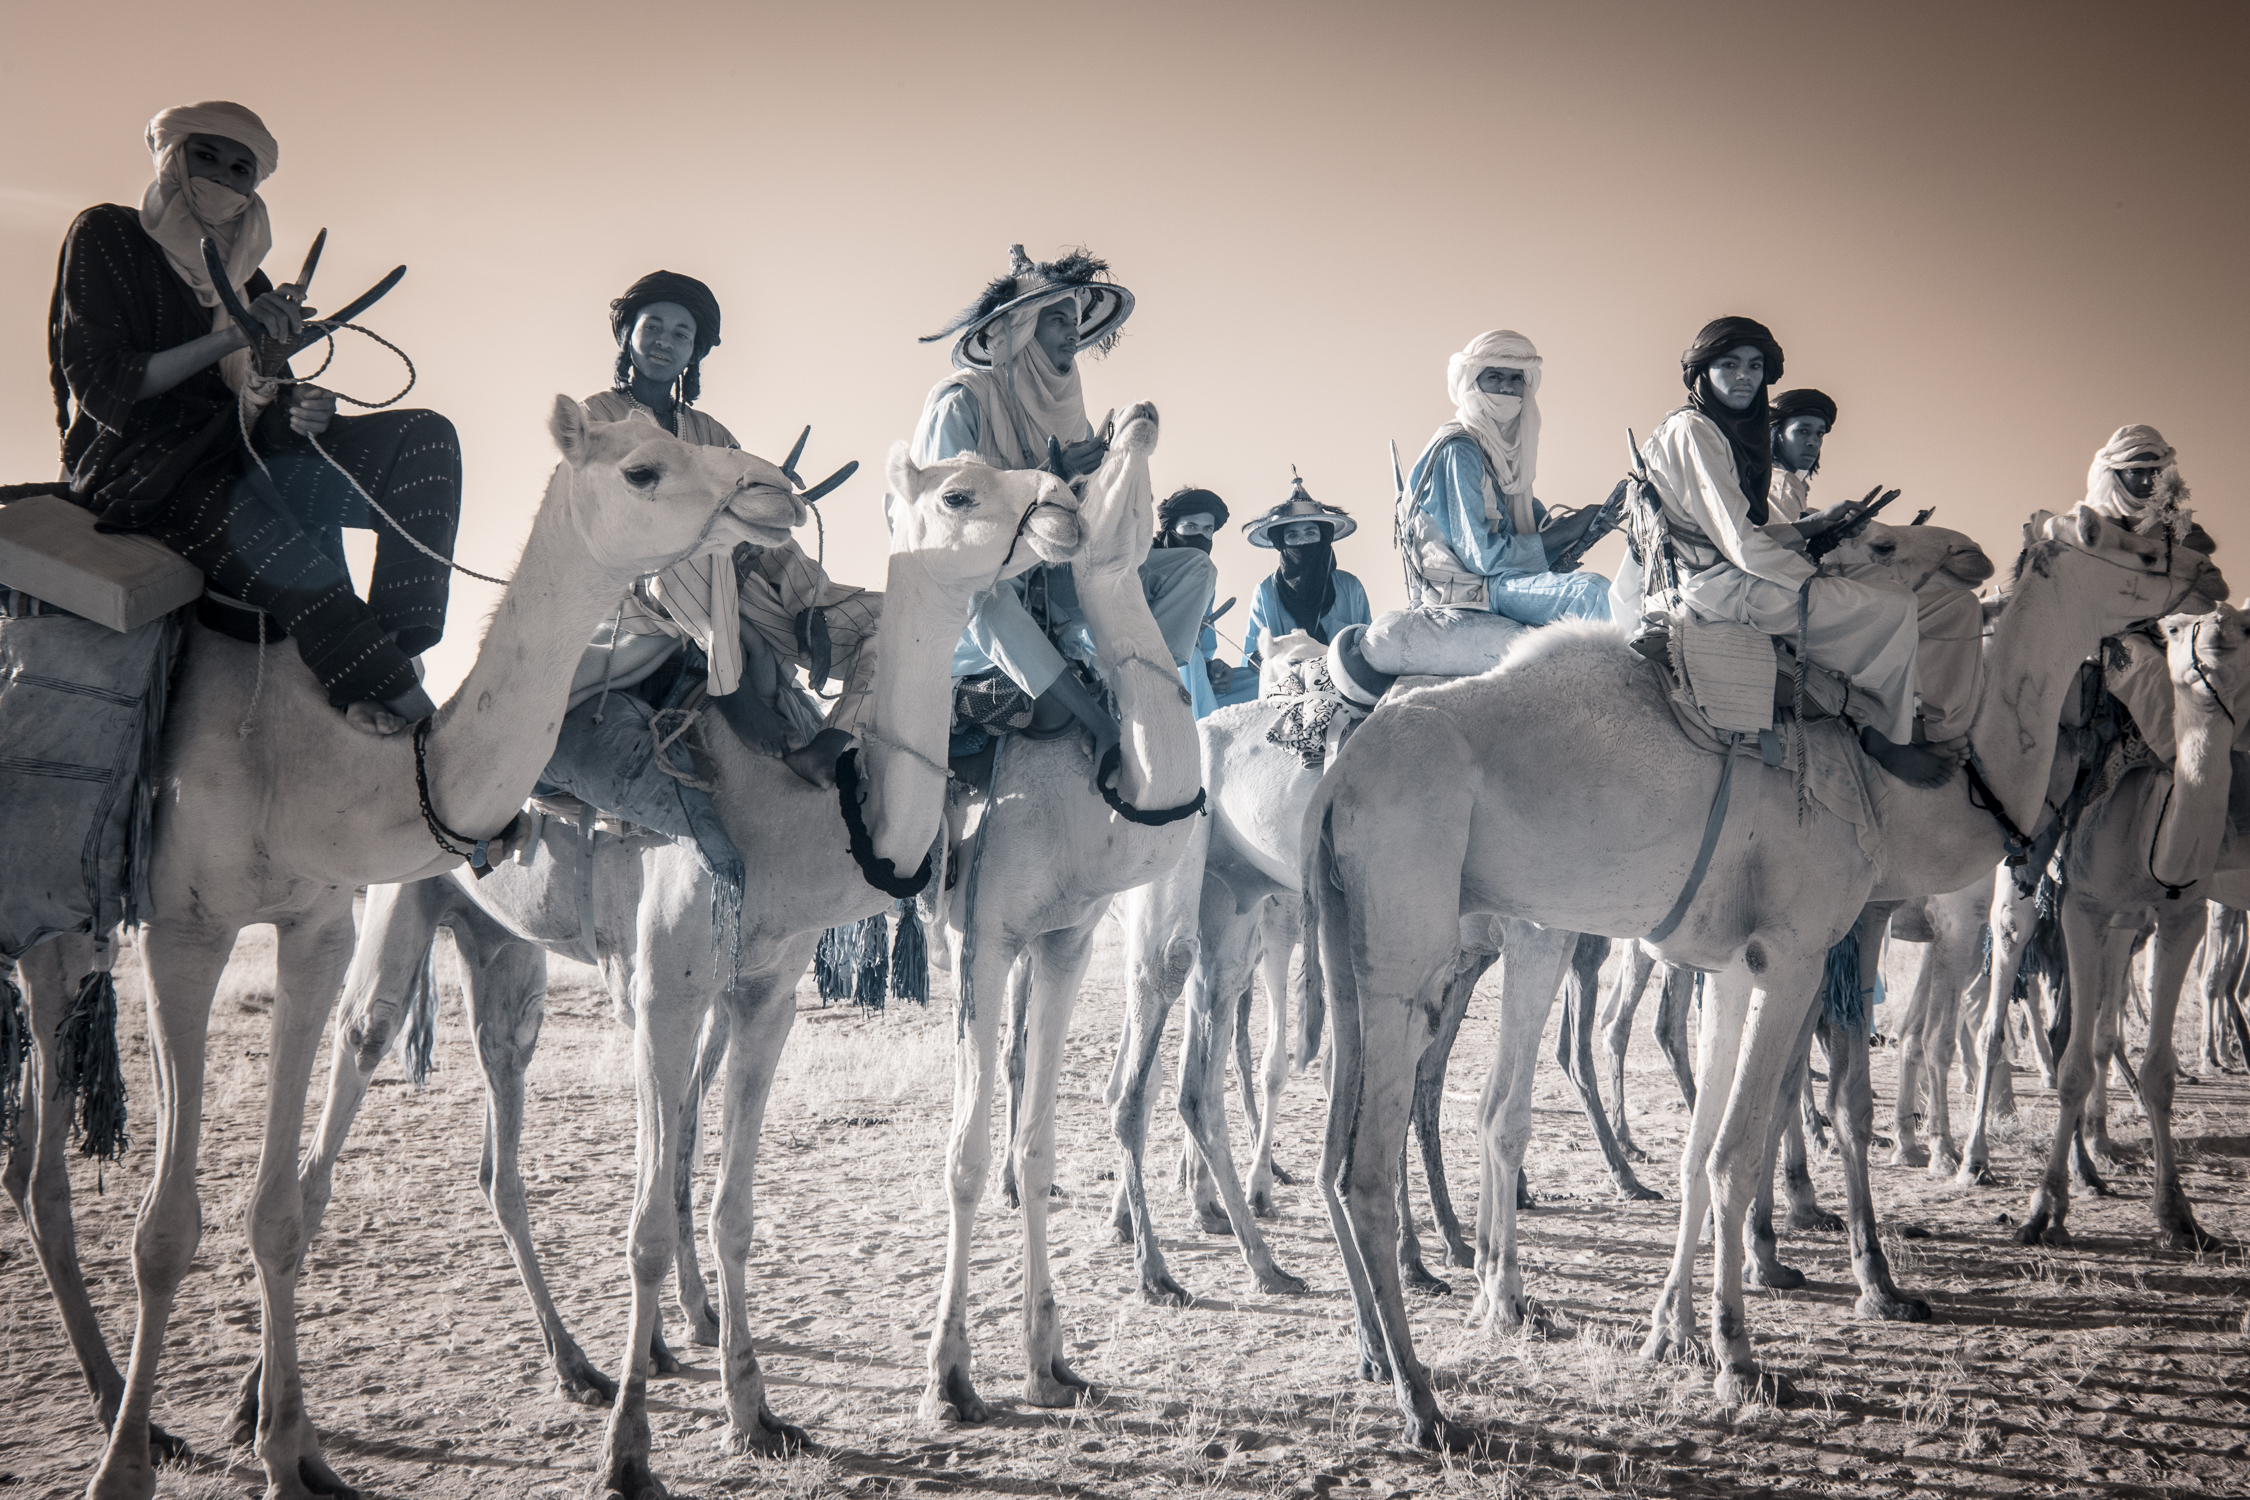 Legendary herders and caravaners of the Sahel desert, the Wodaabe are among the last nomads on earth.